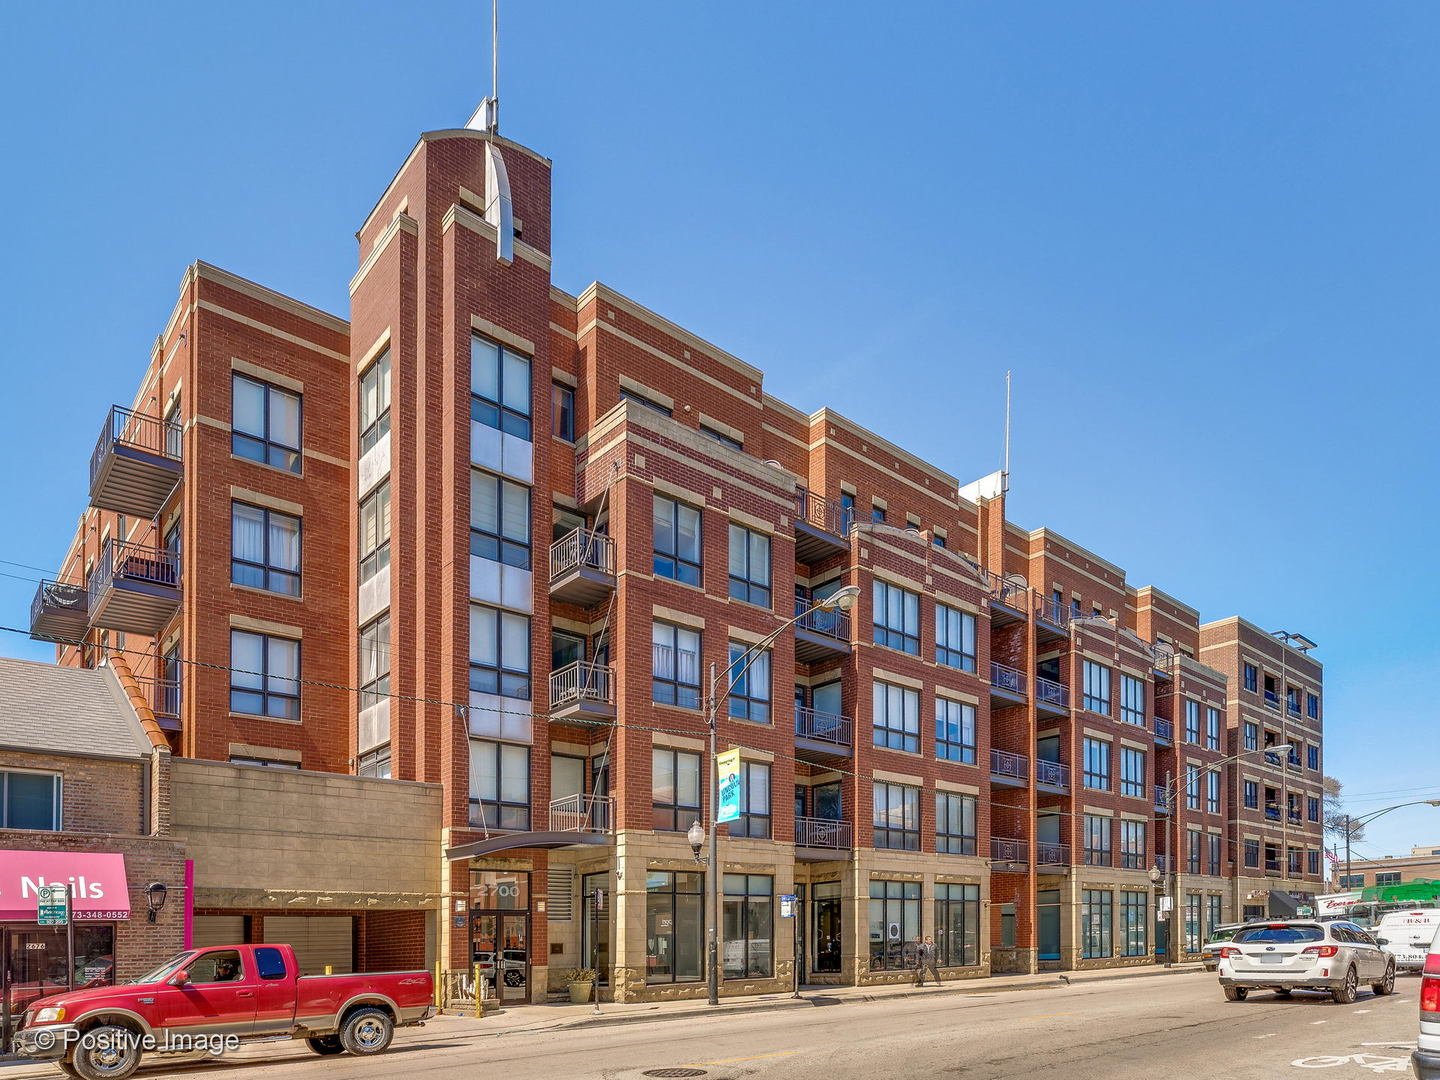 2700 N Halsted Street 201, Chicago, Illinois 60614